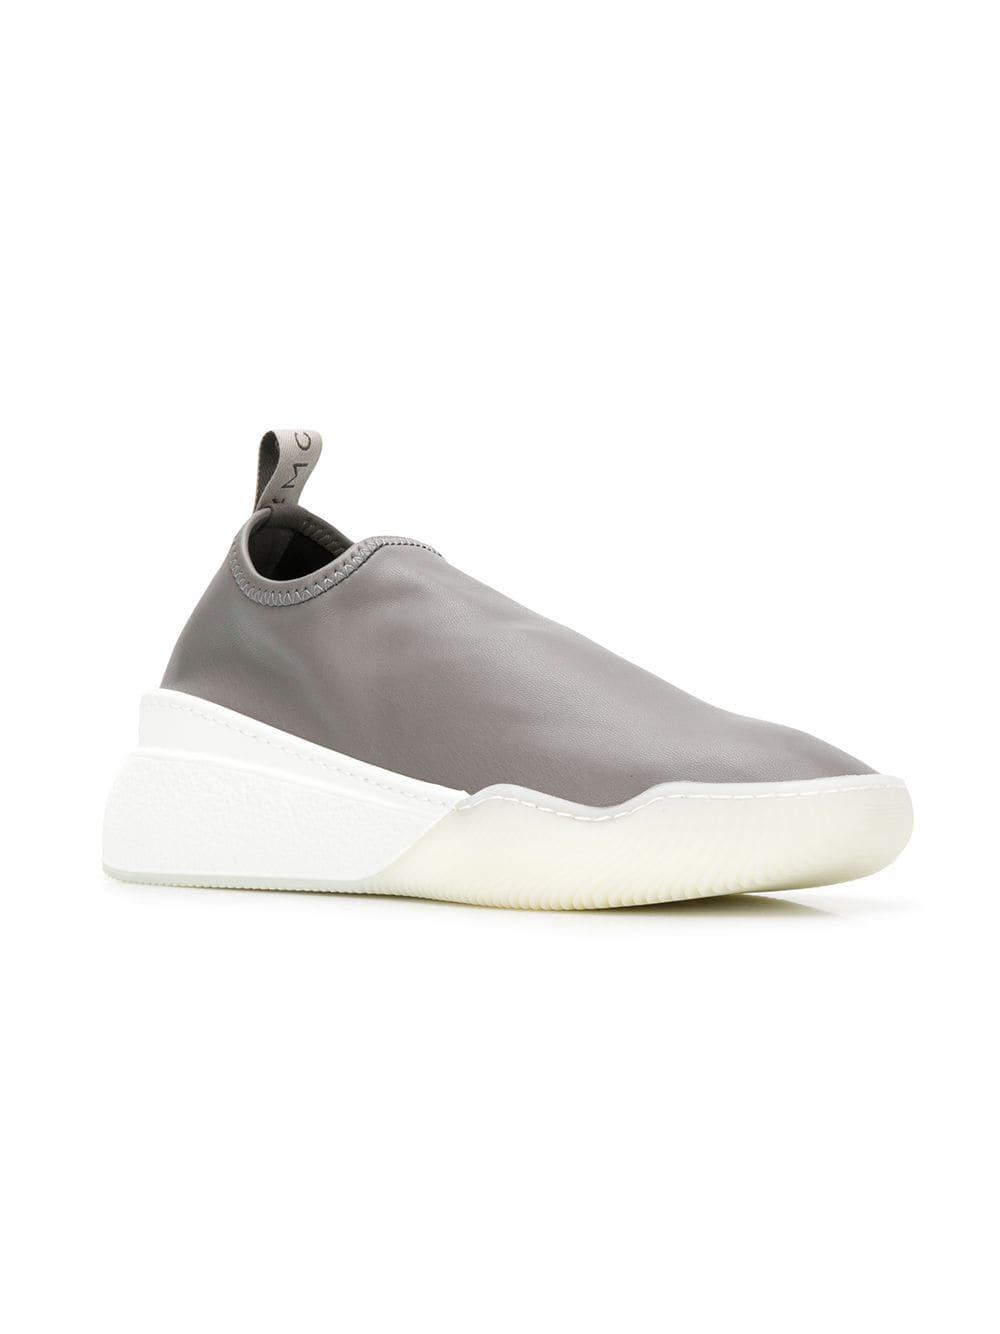 aa2bffdb0f3b Lyst - Stella McCartney Loop Sneakers in Gray - Save 70%